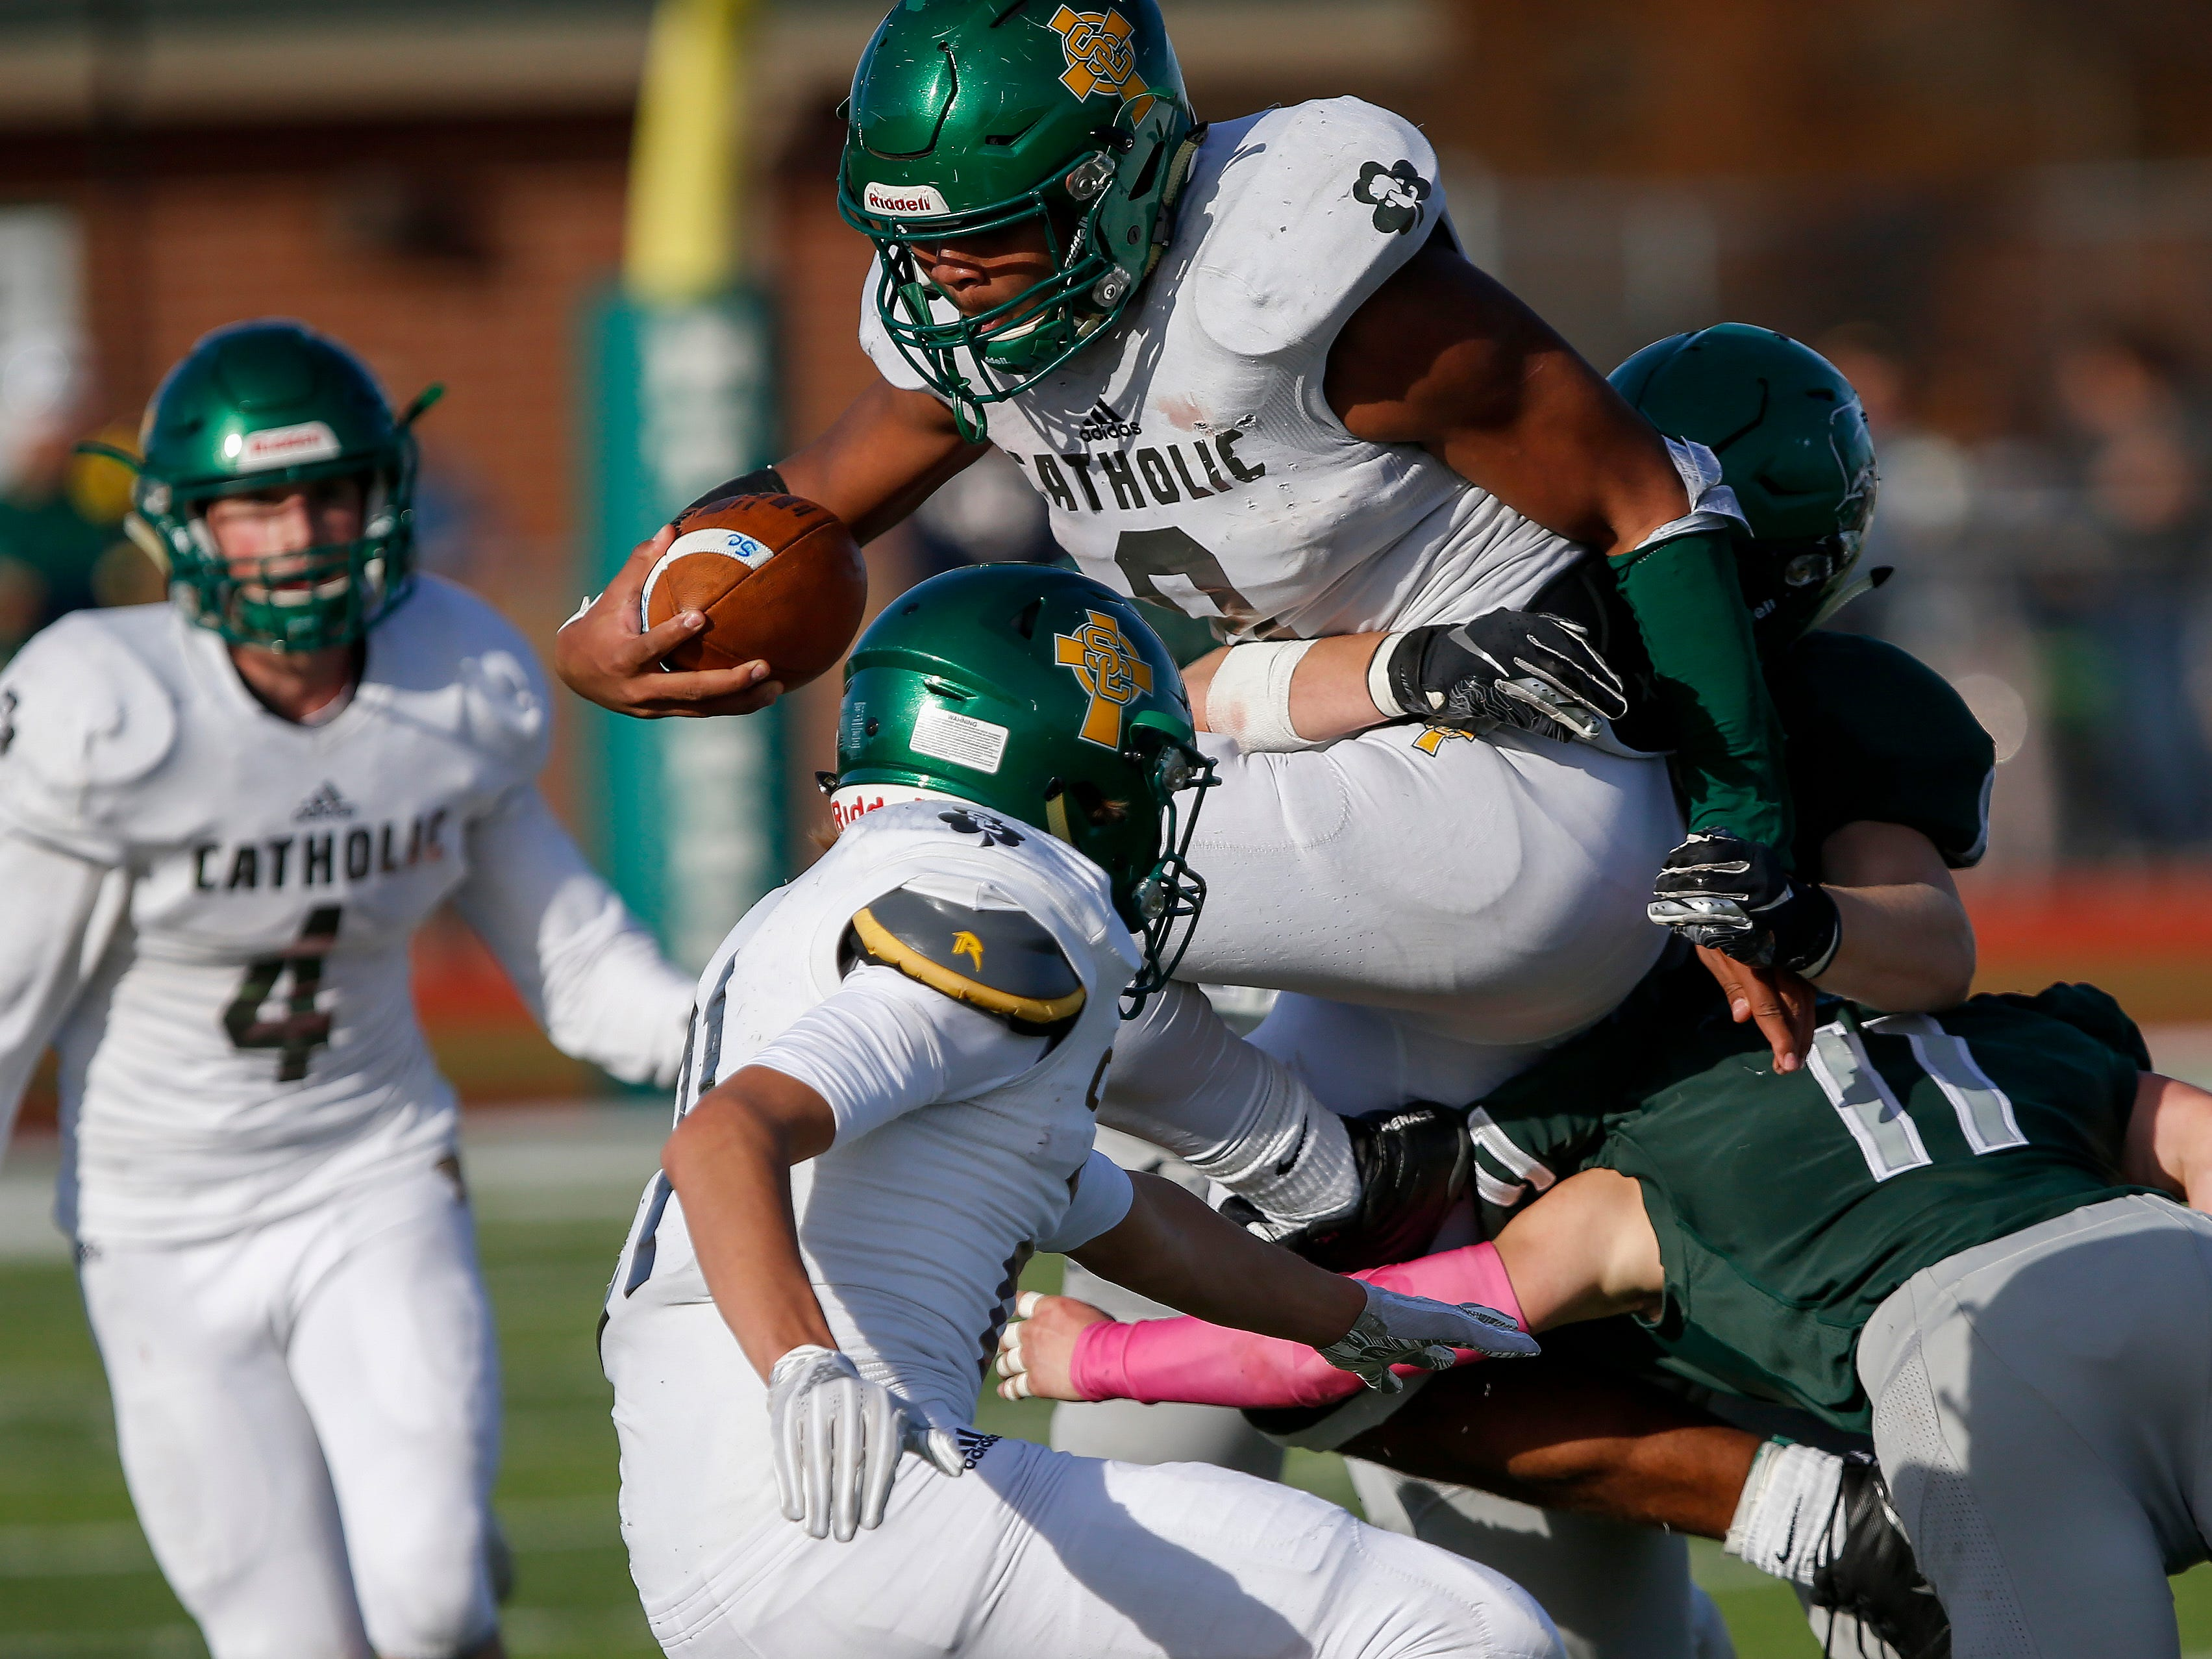 Tyson Riley, of Springfield Catholic, fights through Mount Vernon defenders in the Irish's 26-18 loss in the Class 3 Quarterfinal game at Mount Vernon High School on Saturday, Nov. 17, 2018.